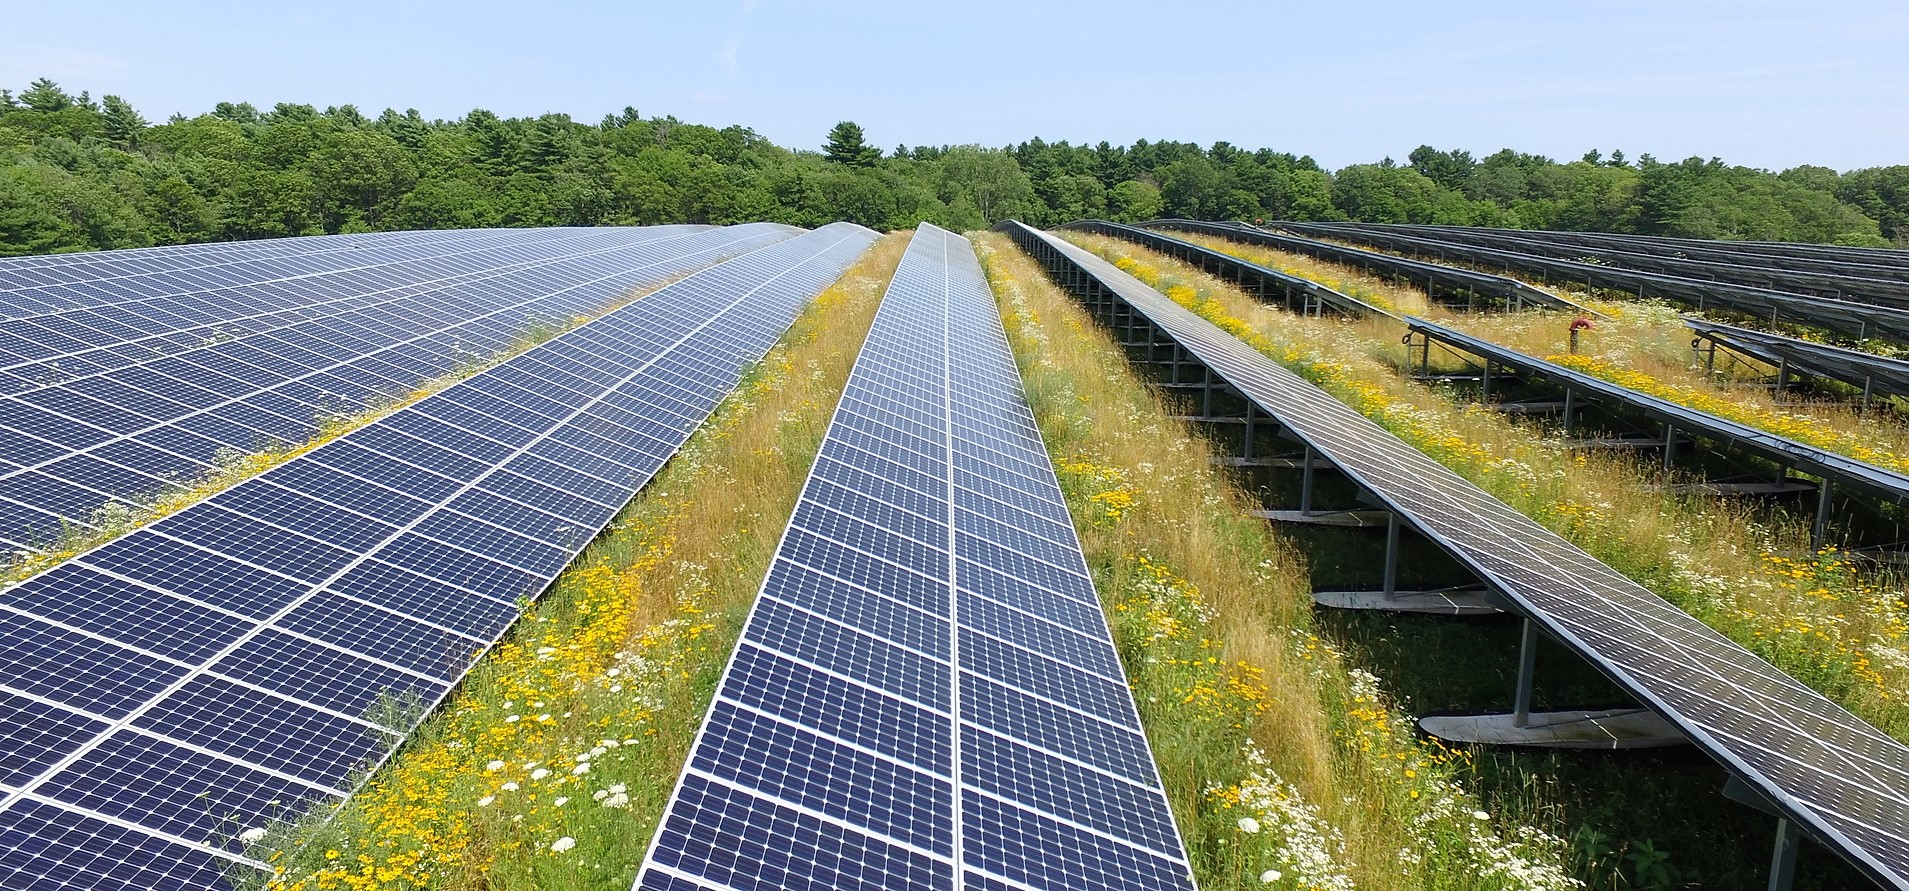 Massachusetts solar farm